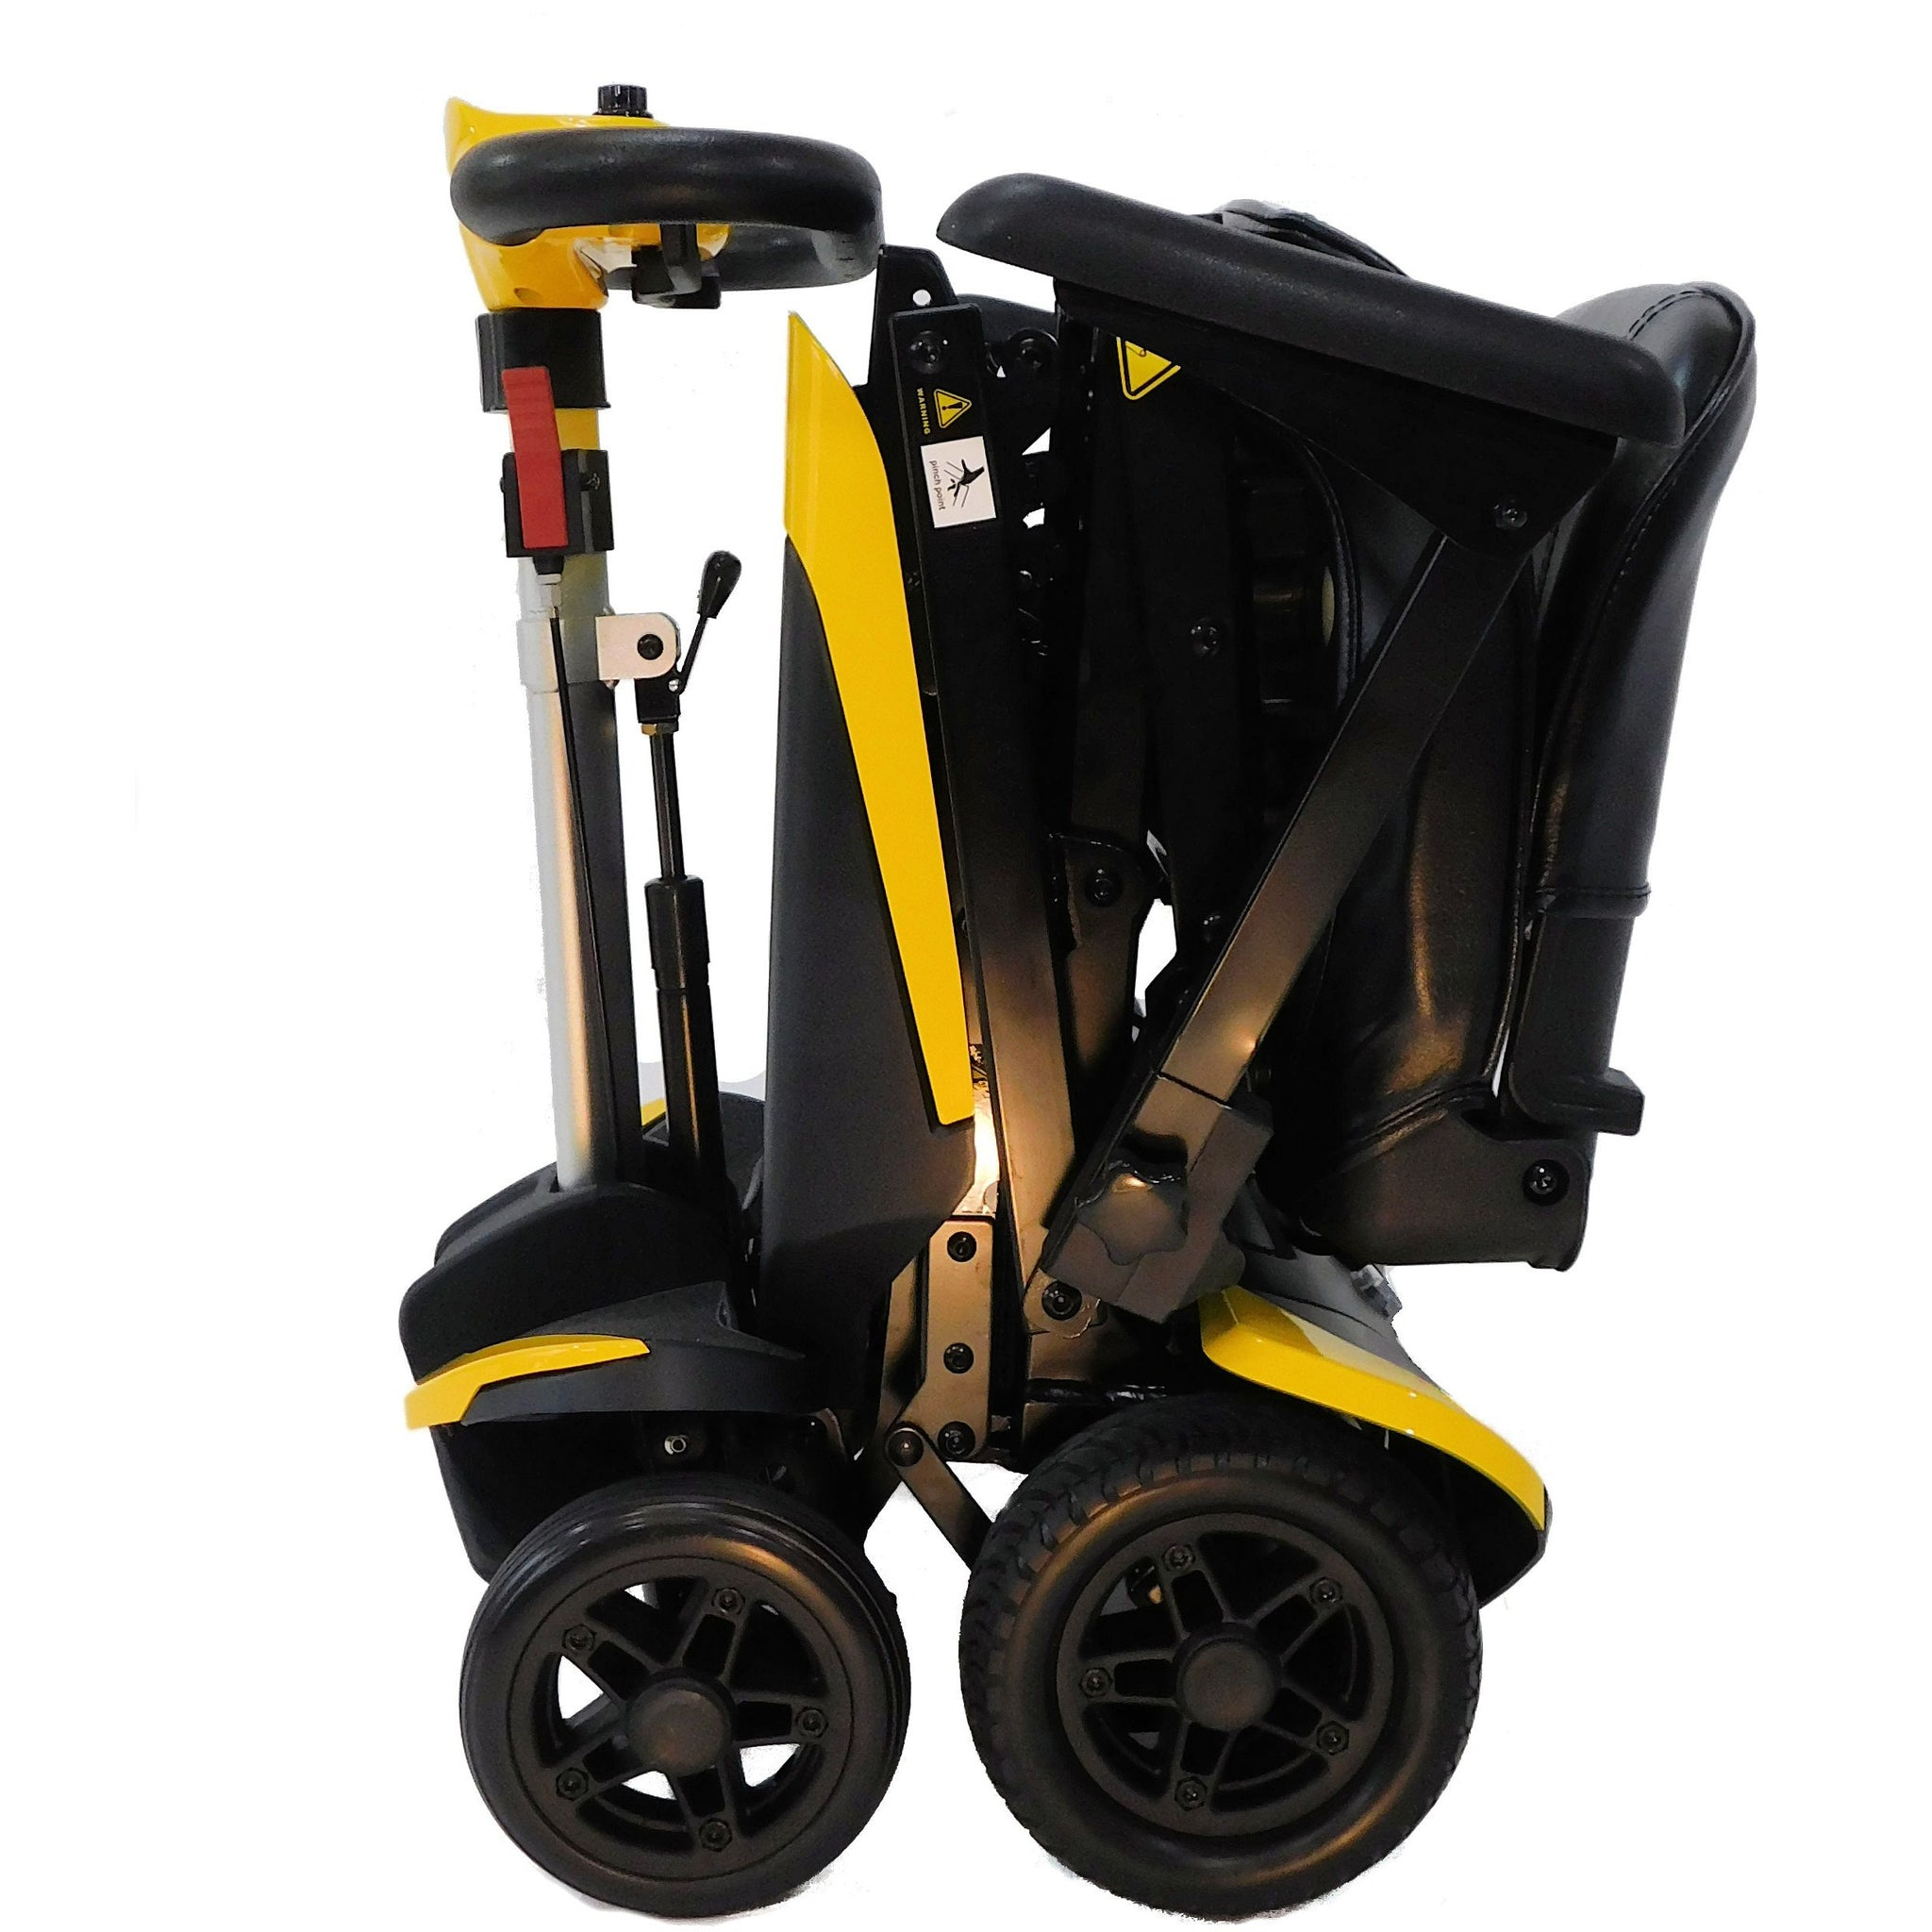 Enhance Mobility: Transformer Scooter (Automatic Folding Scooter) - S3021 - Yellow Color Fold View